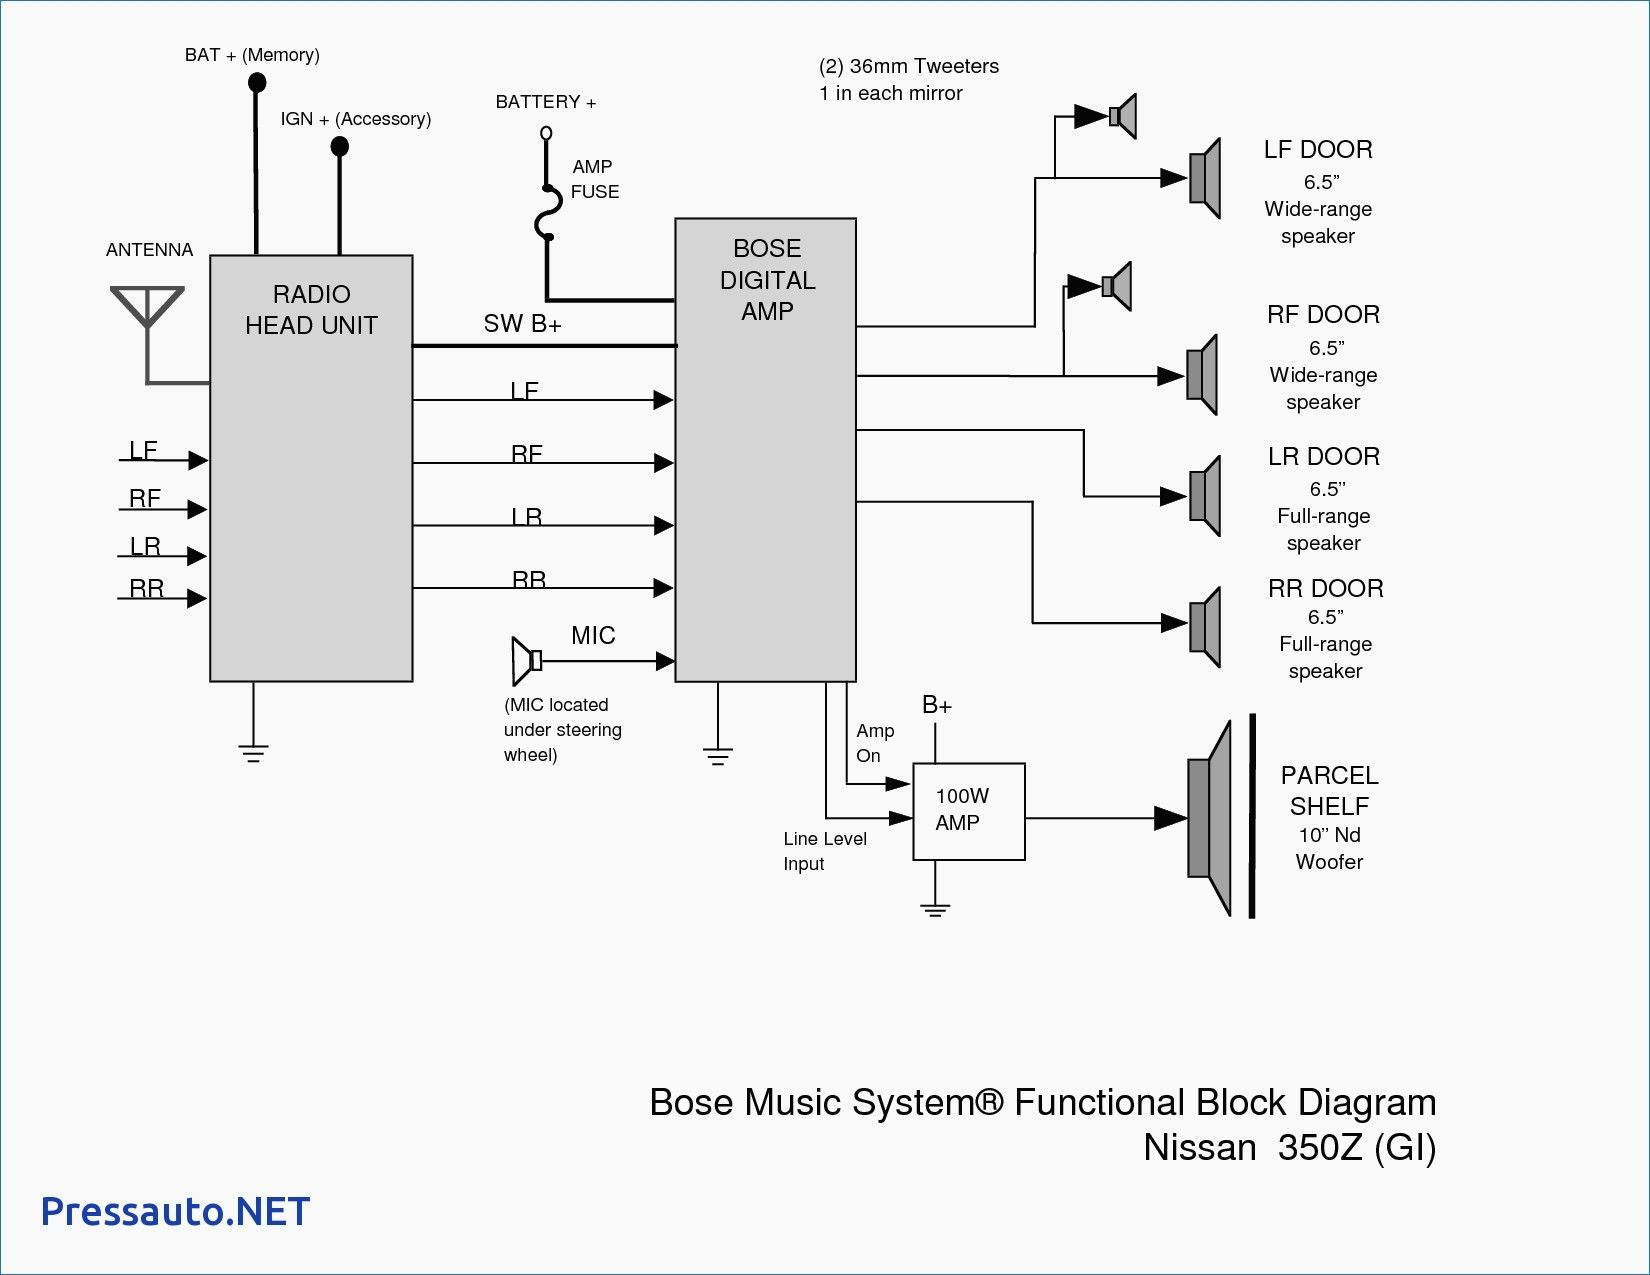 Bose Car Amplifier Wiring Diagram Http Bookingritzcarlton Info Bose Car Amplifier Wiring Diagram Car Amplifier Bose Amplifier